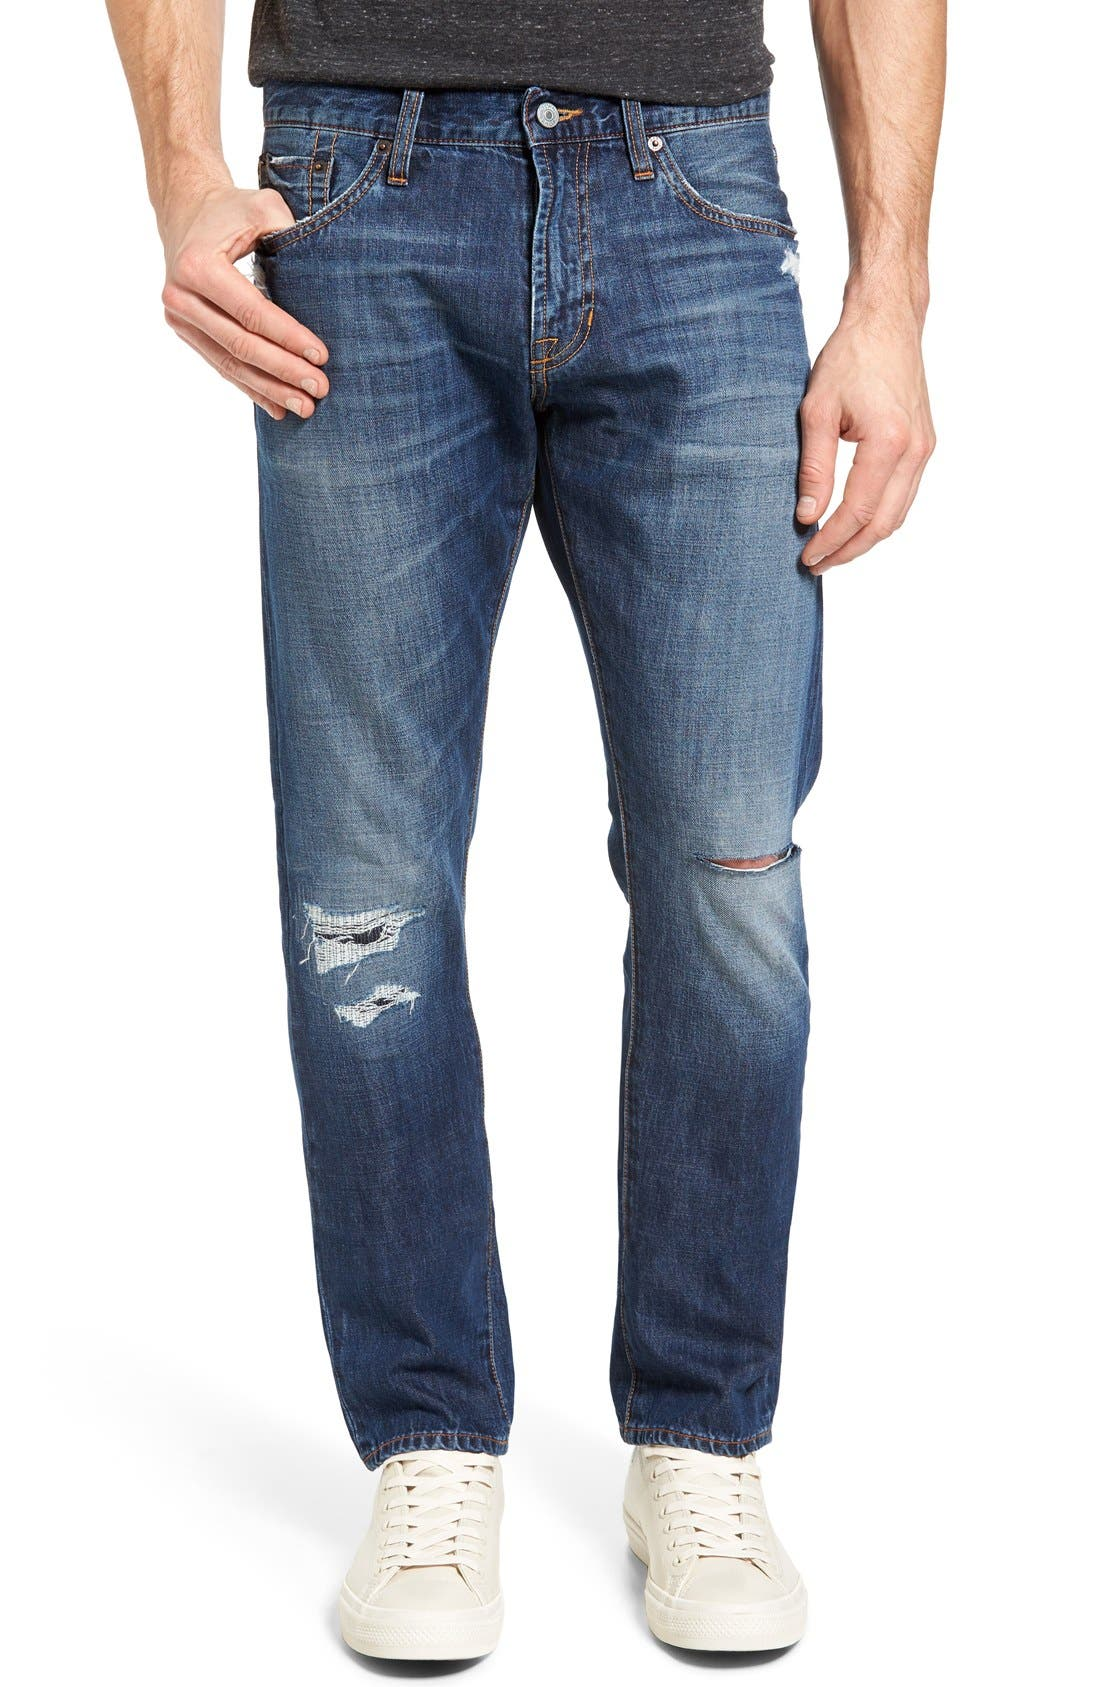 Jean Shop Slim Straight Leg Selvedge Jeans (Mid Authentic)